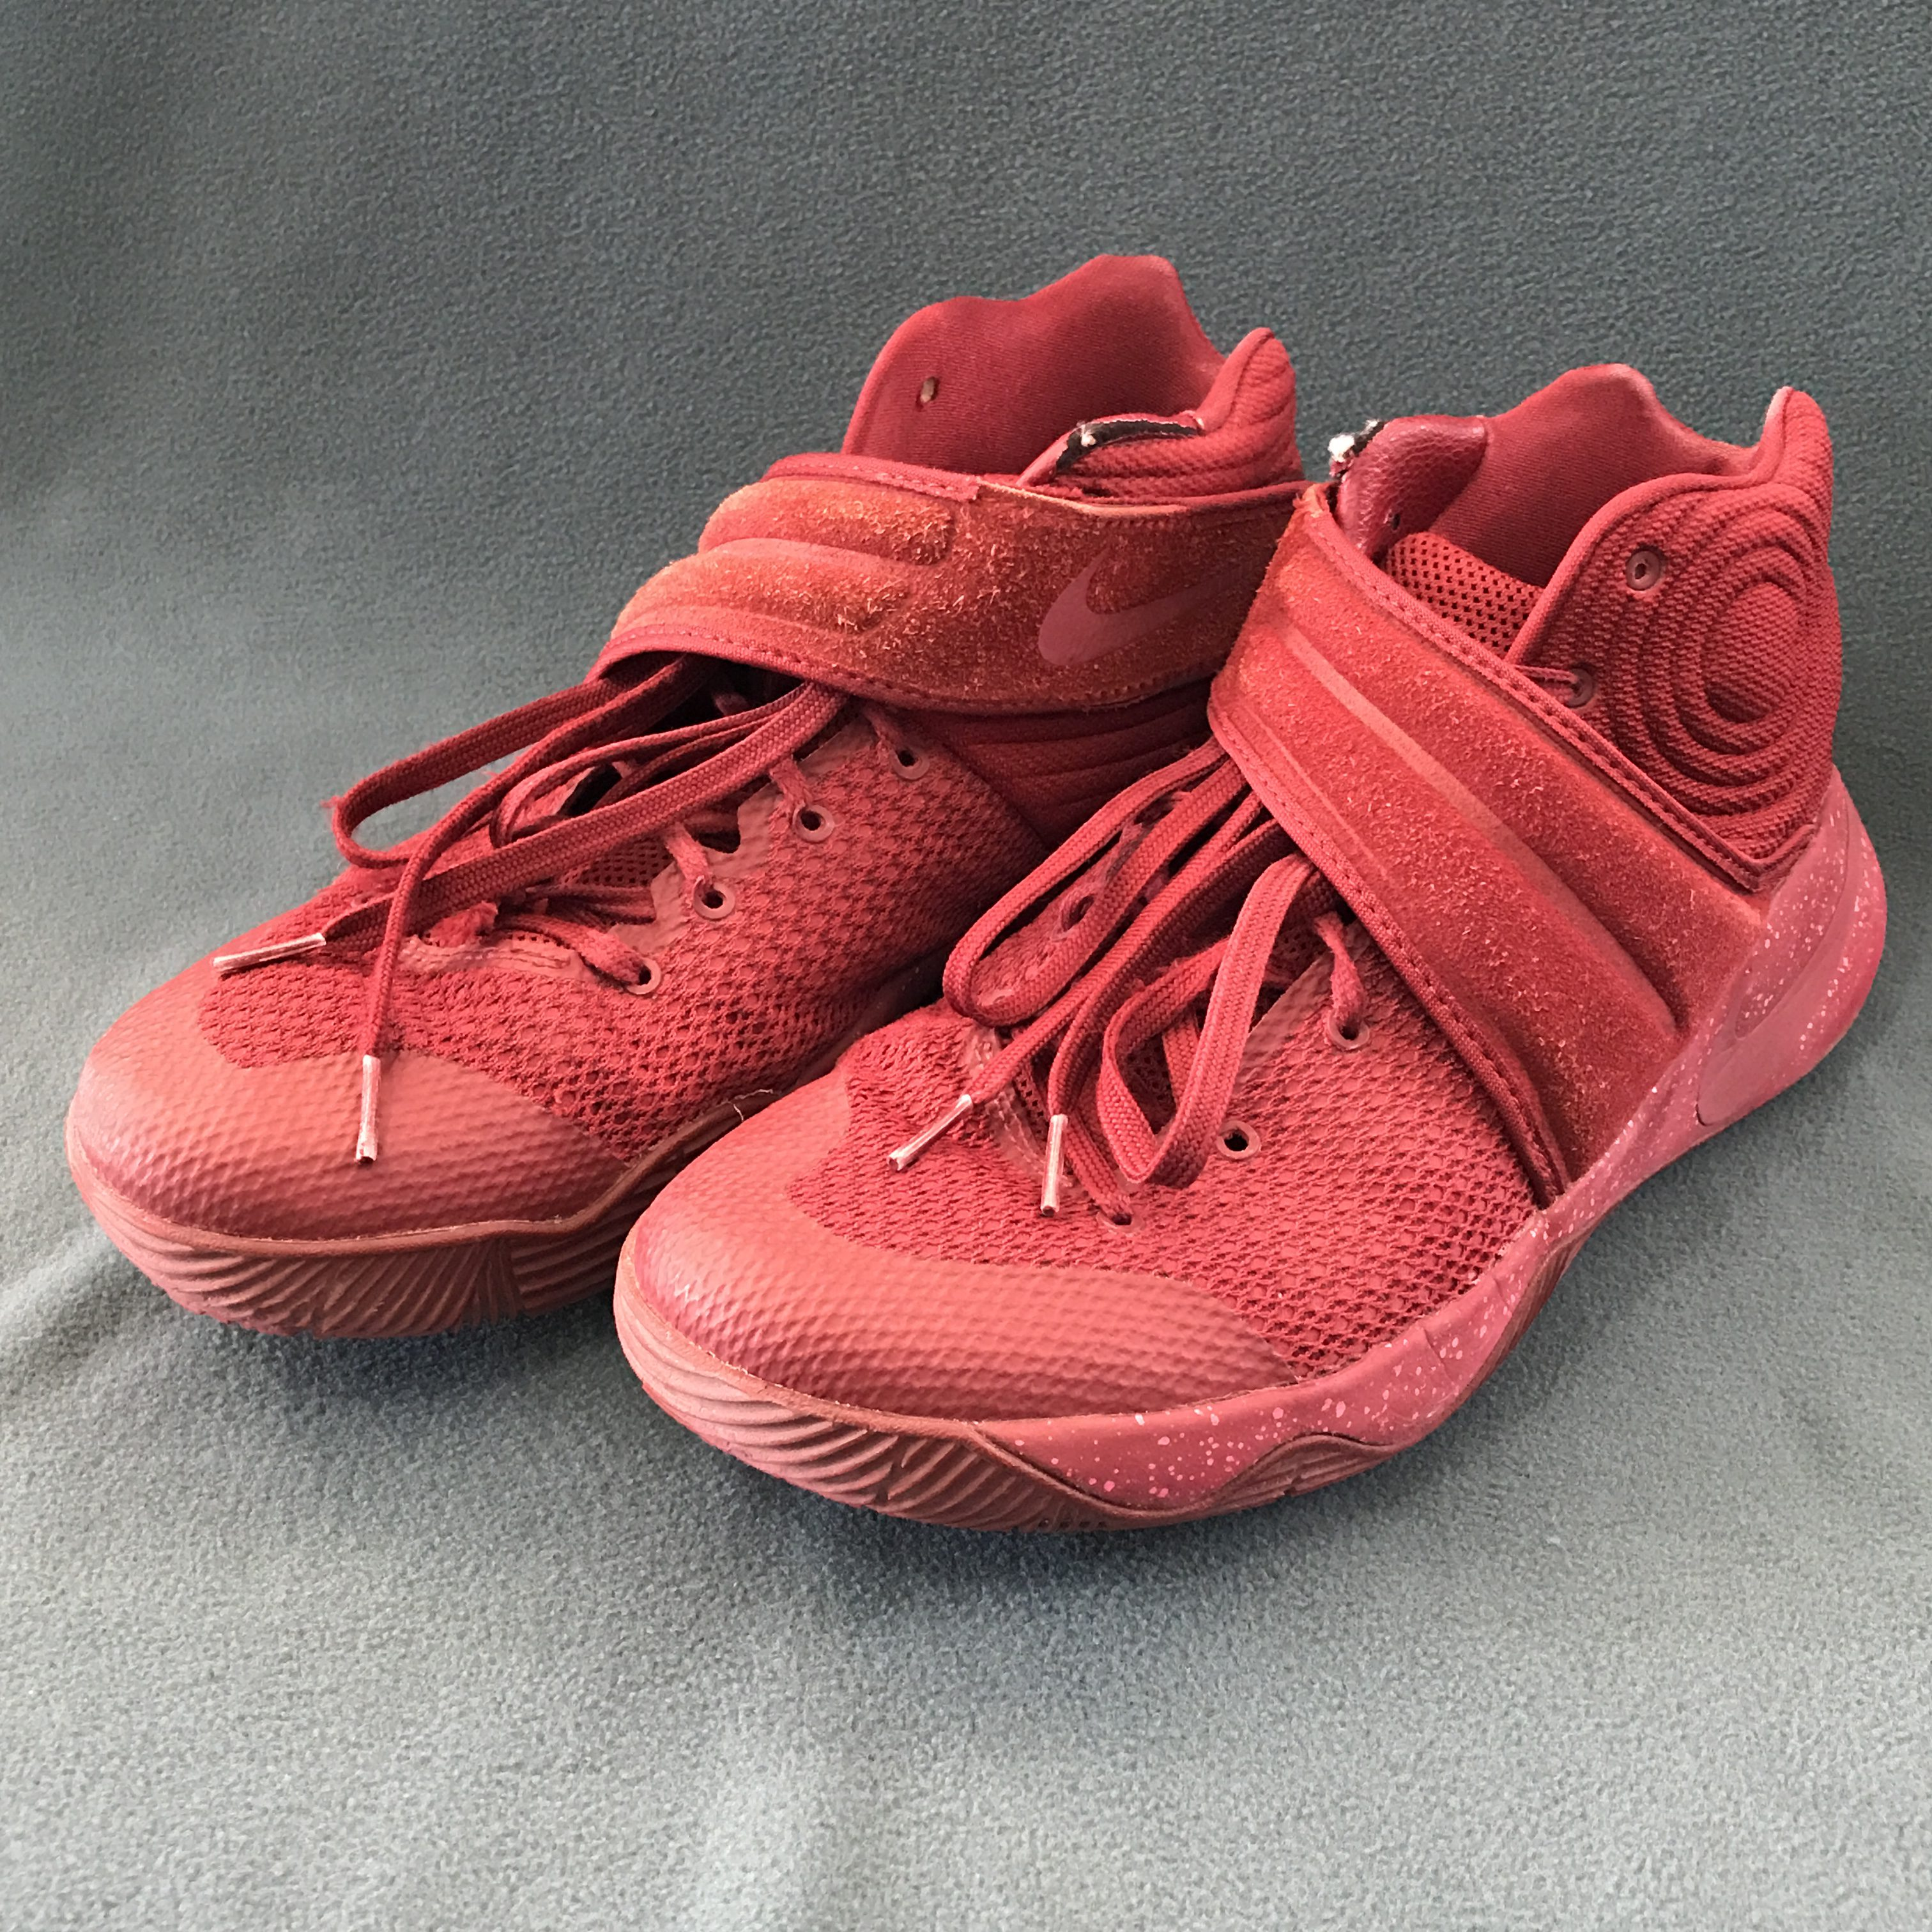 """Nike Kyrie 2 """"Triple Black"""" メンズ team red/team red-game royal-total orange ナイキ バッシュ カイリー2 kyri""のイメージ"